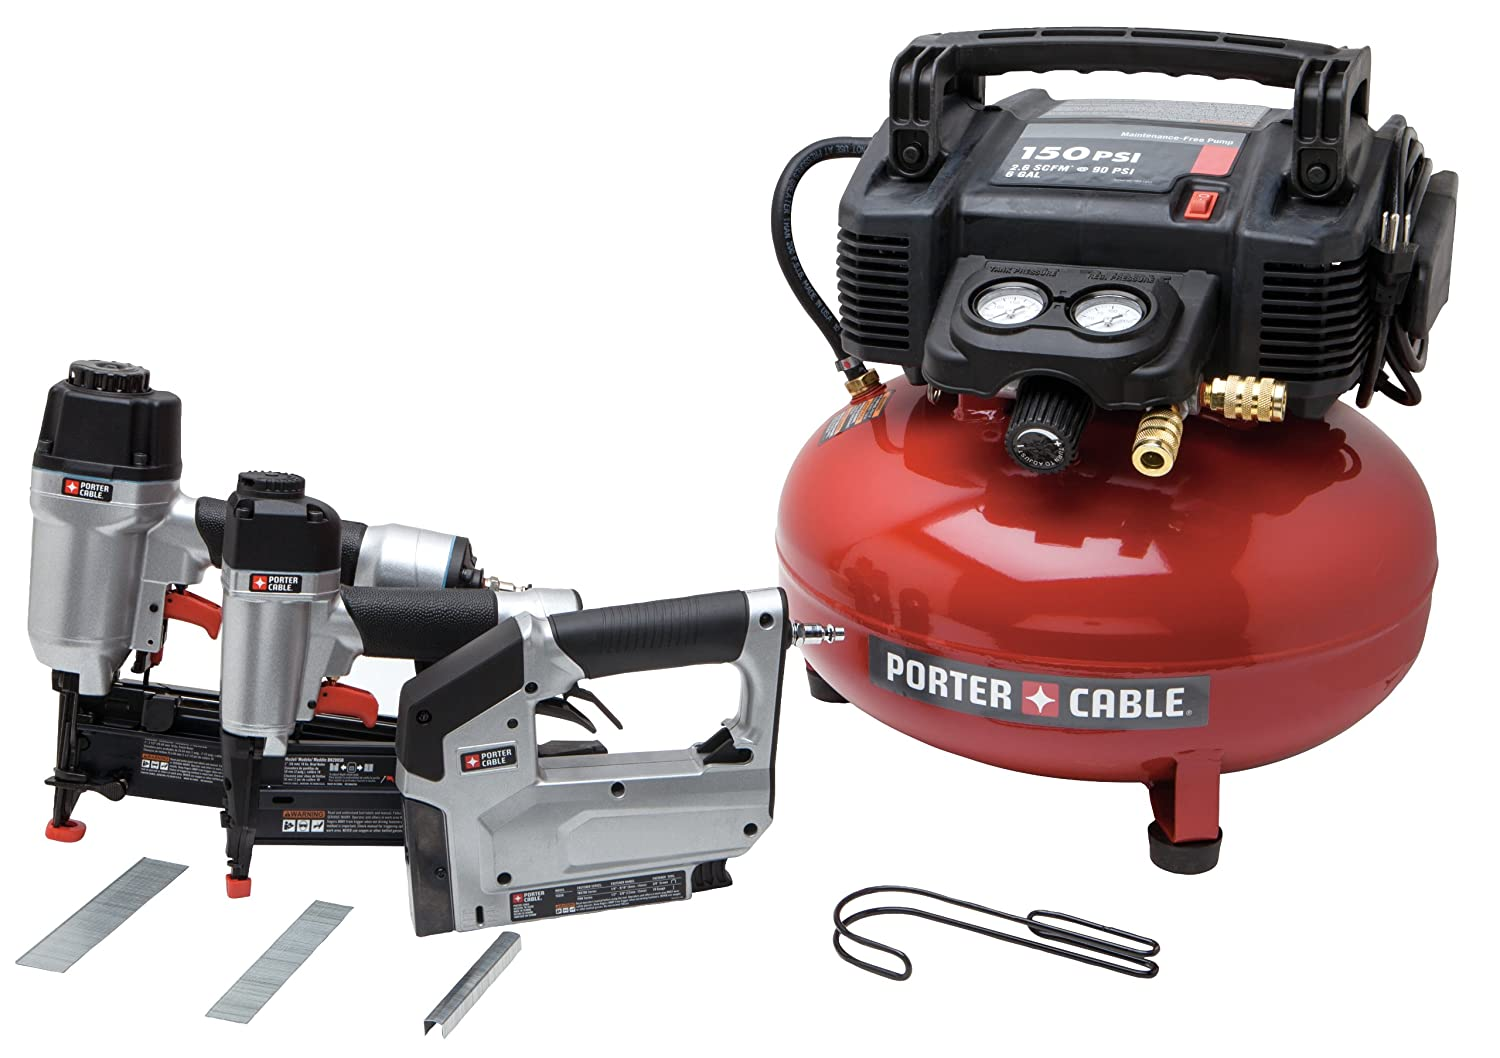 1. <strong>Porter Cable PCFP12234 3 in 1 air tool combo kit</strong>